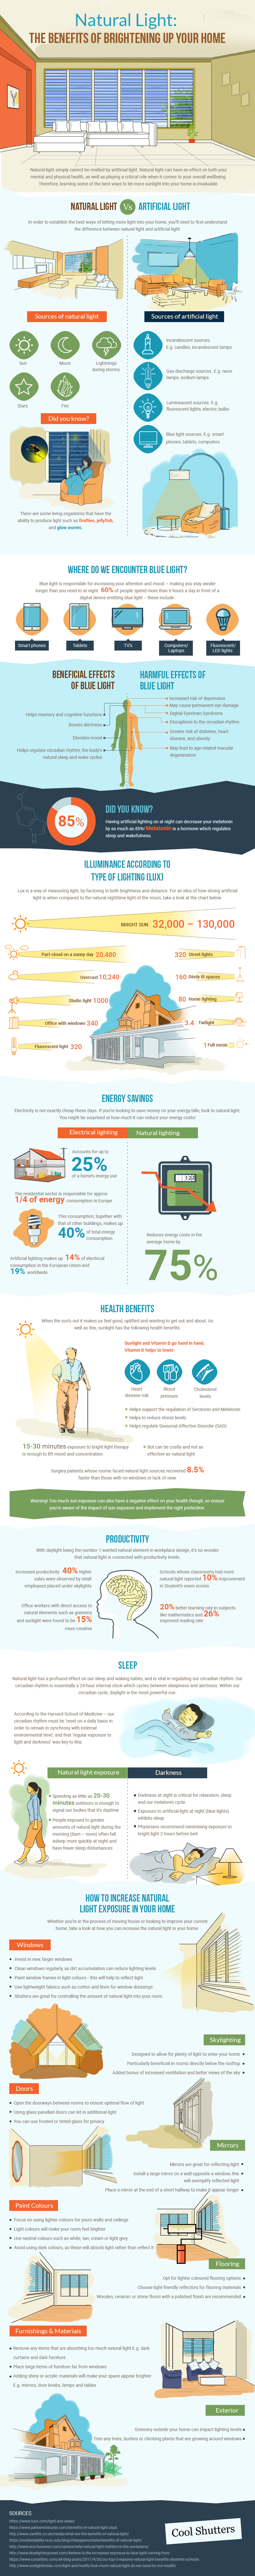 The-Benefits-of-Natural-Light_Infographic